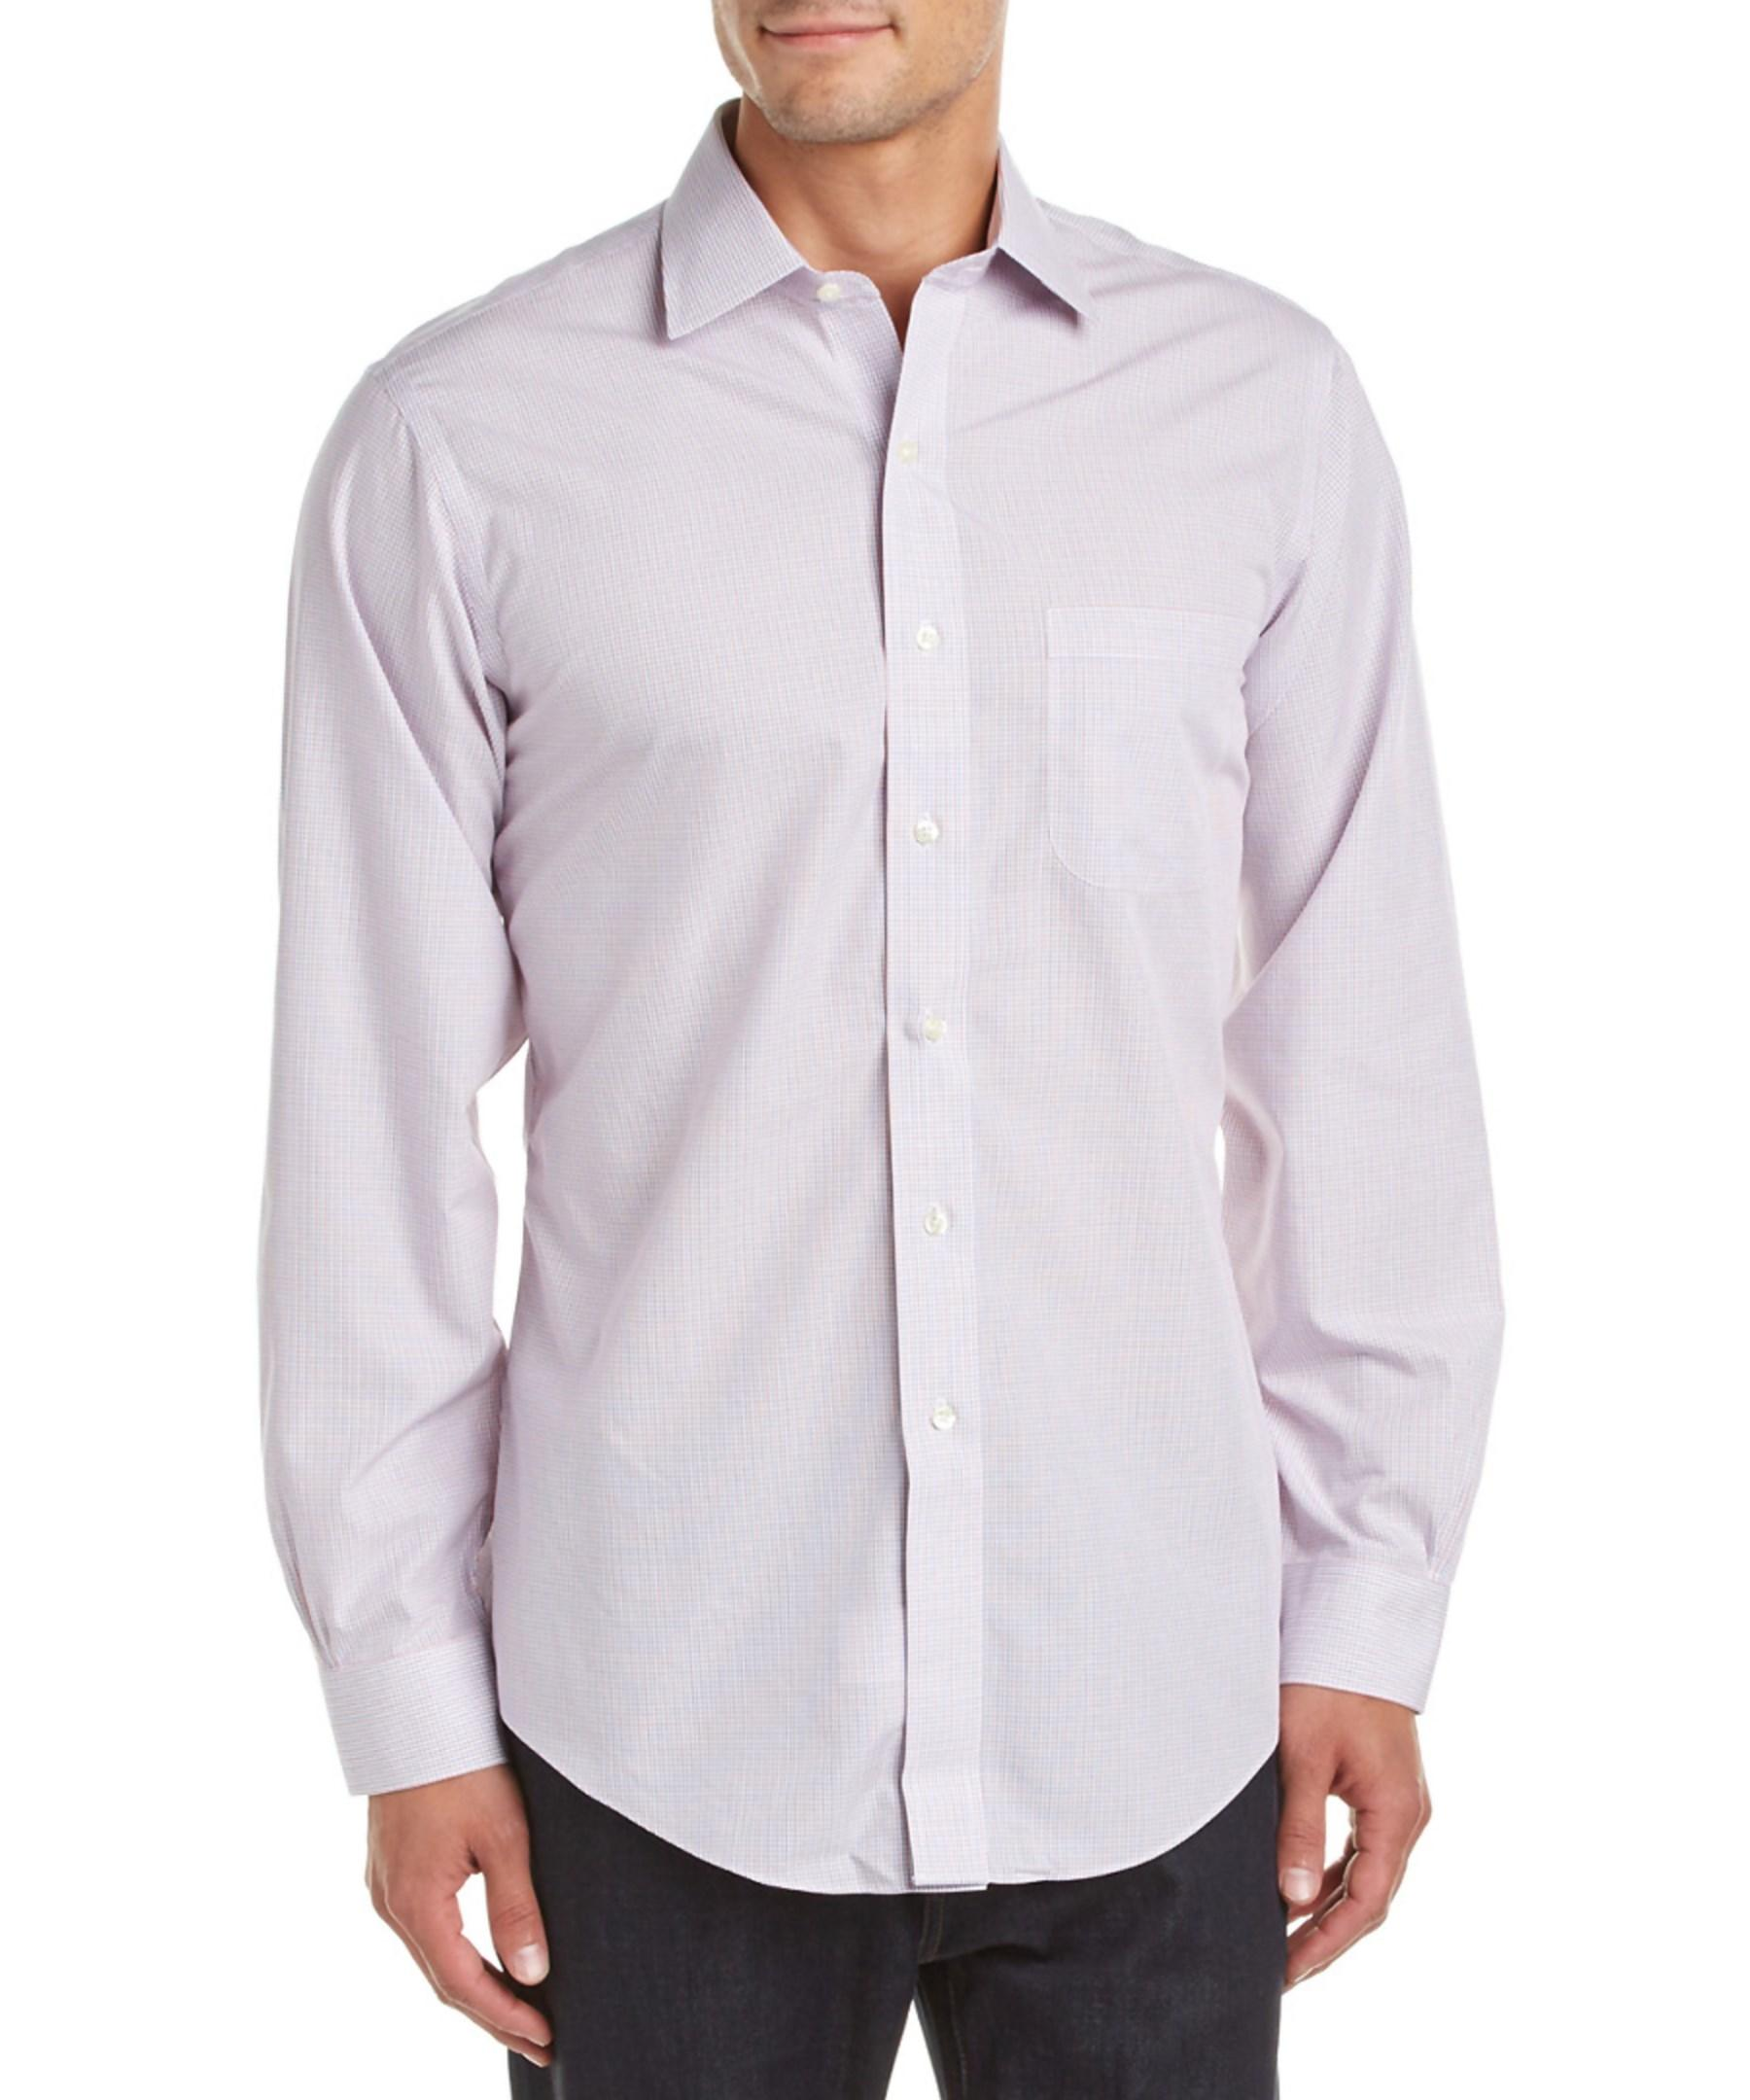 Brooks Brothers Regent Fit Dress Shirt In White For Men Lyst